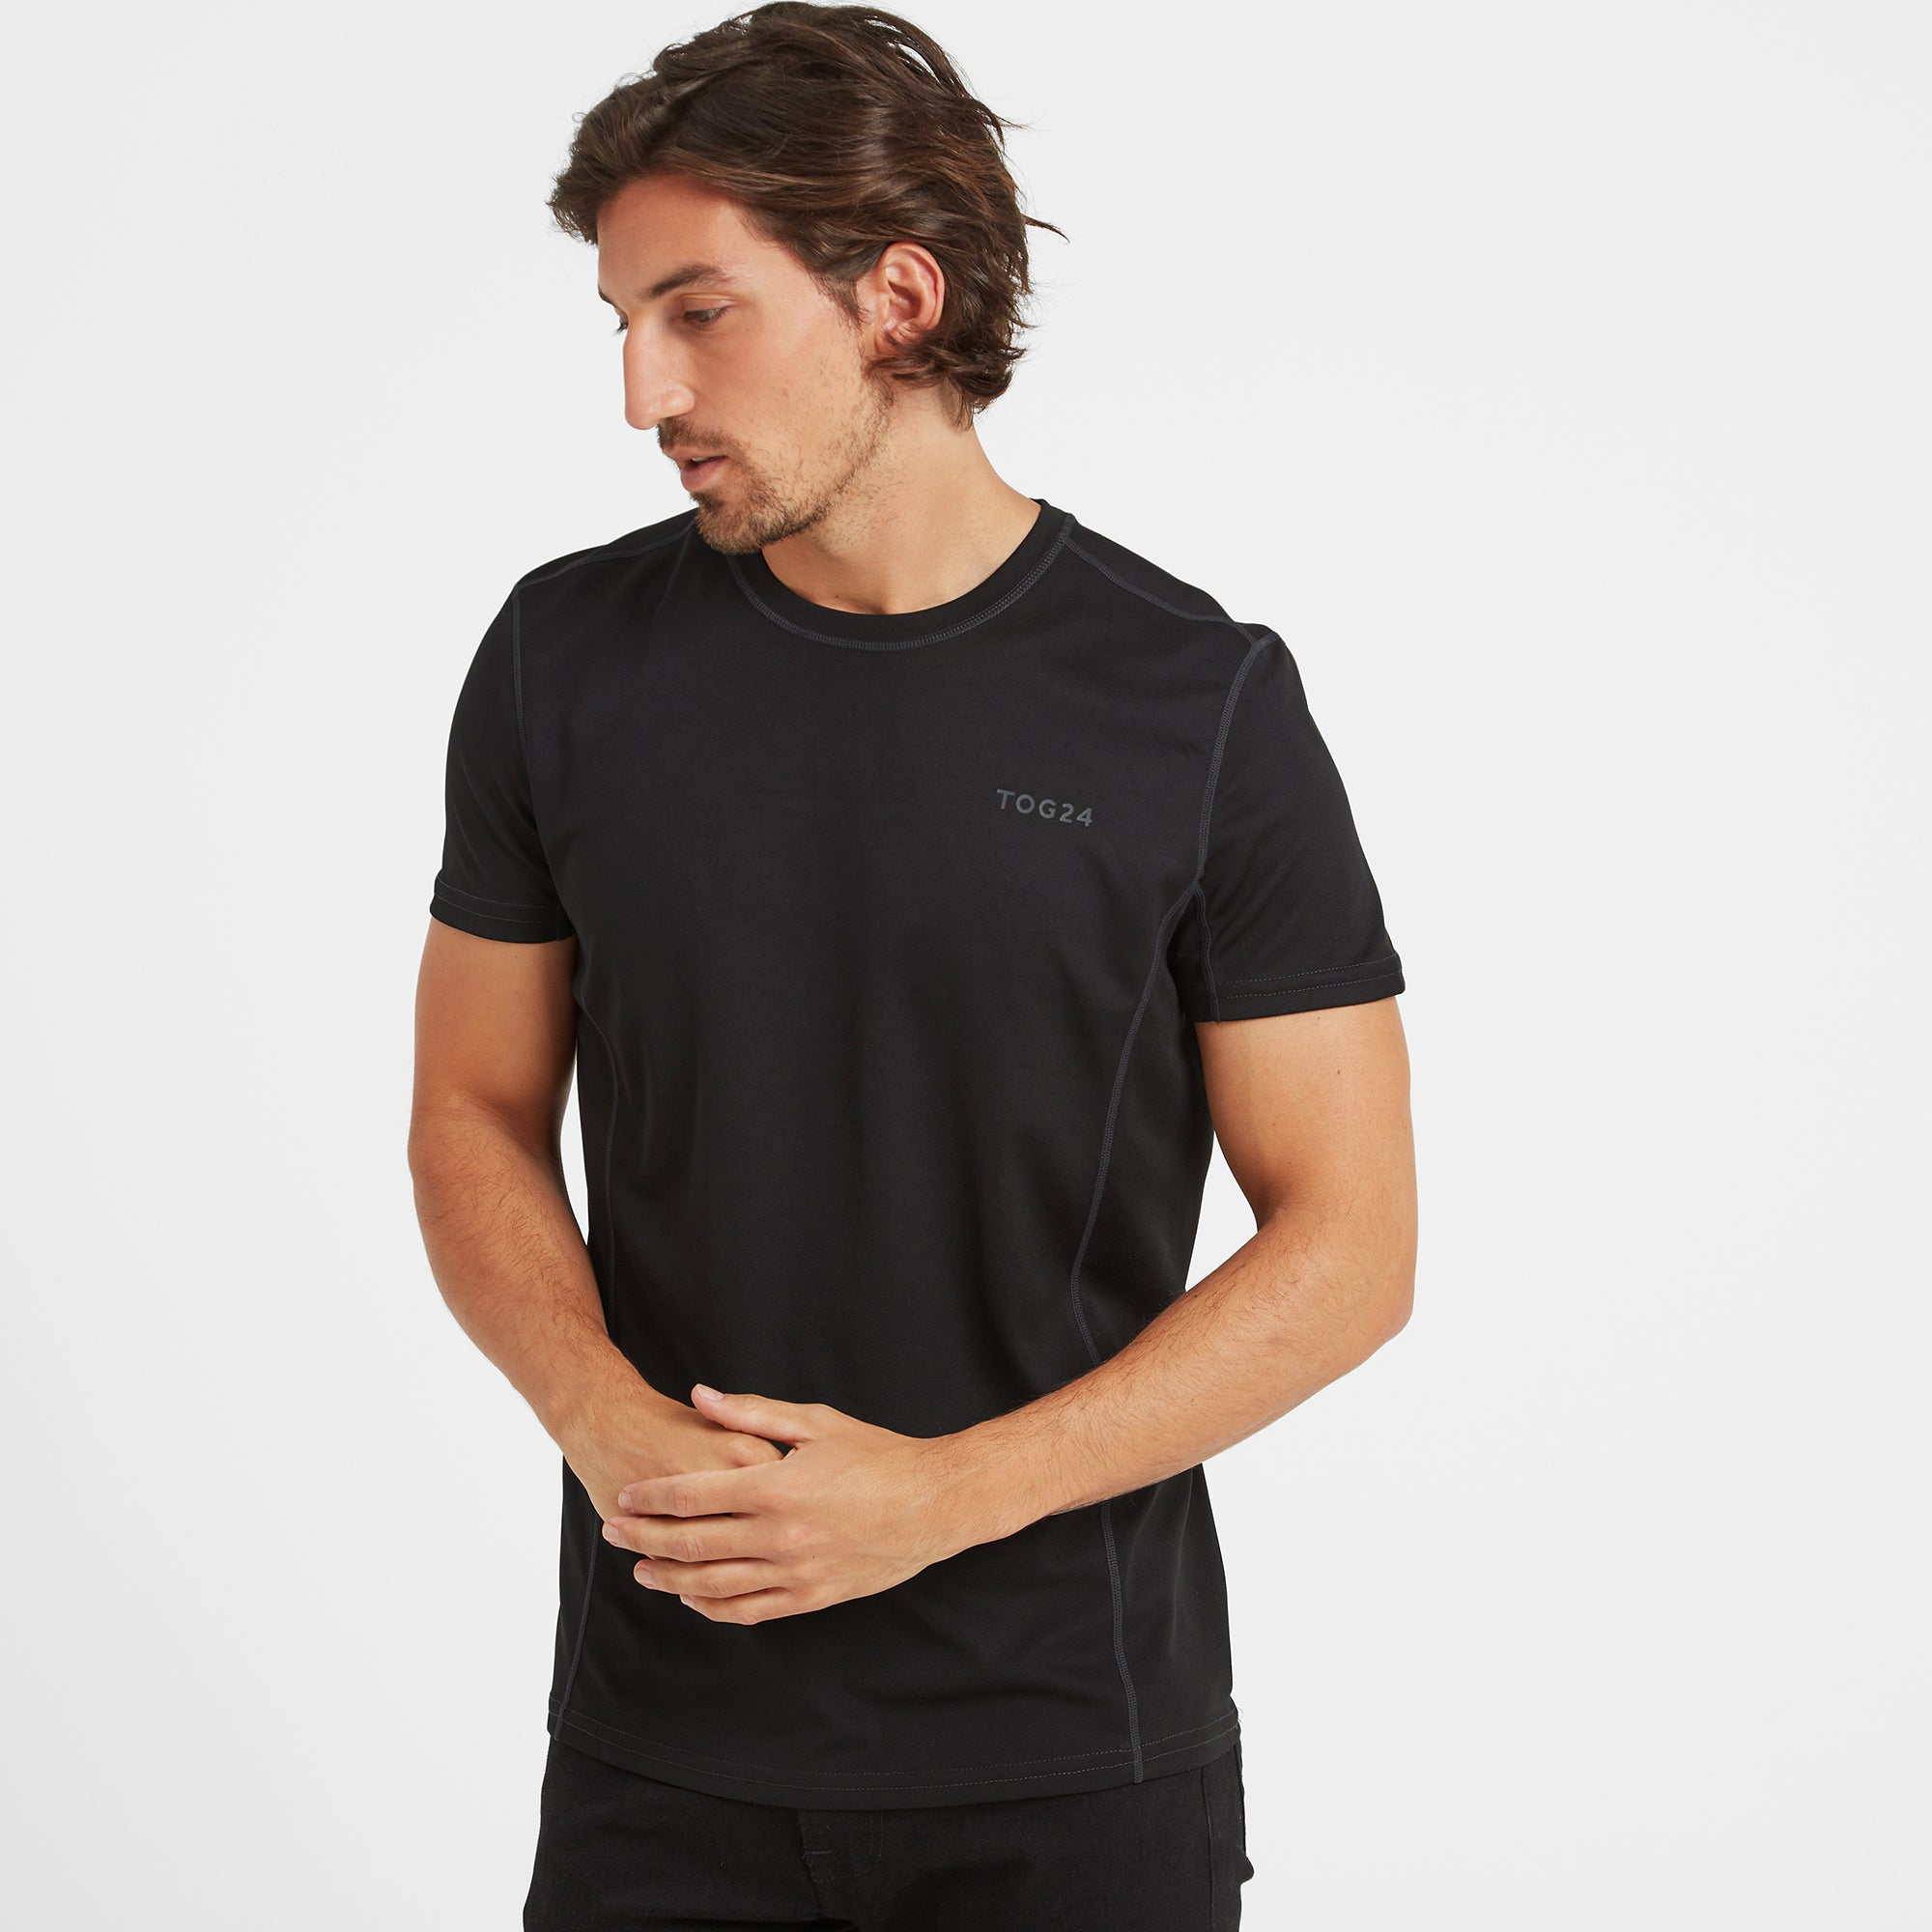 Blevin Mens Performance T-Shirt - Black